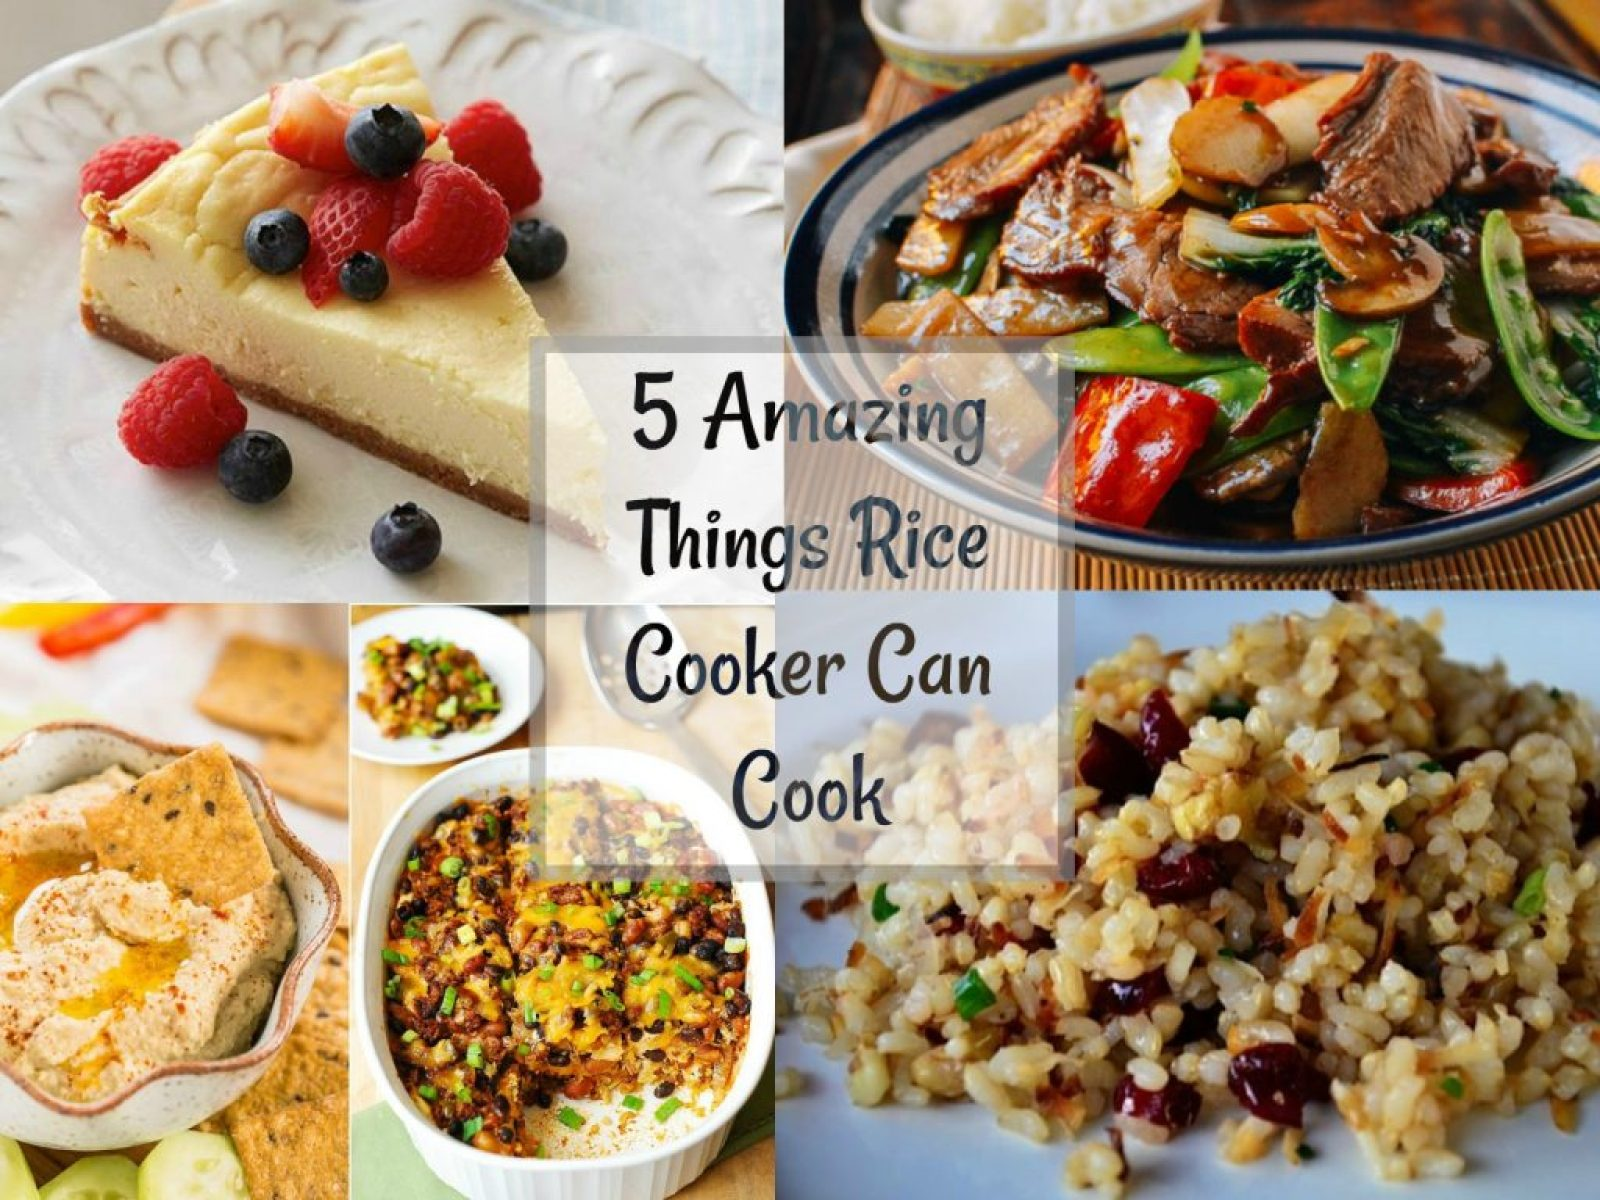 5 Amazing Things Rice Cooker Can Cook